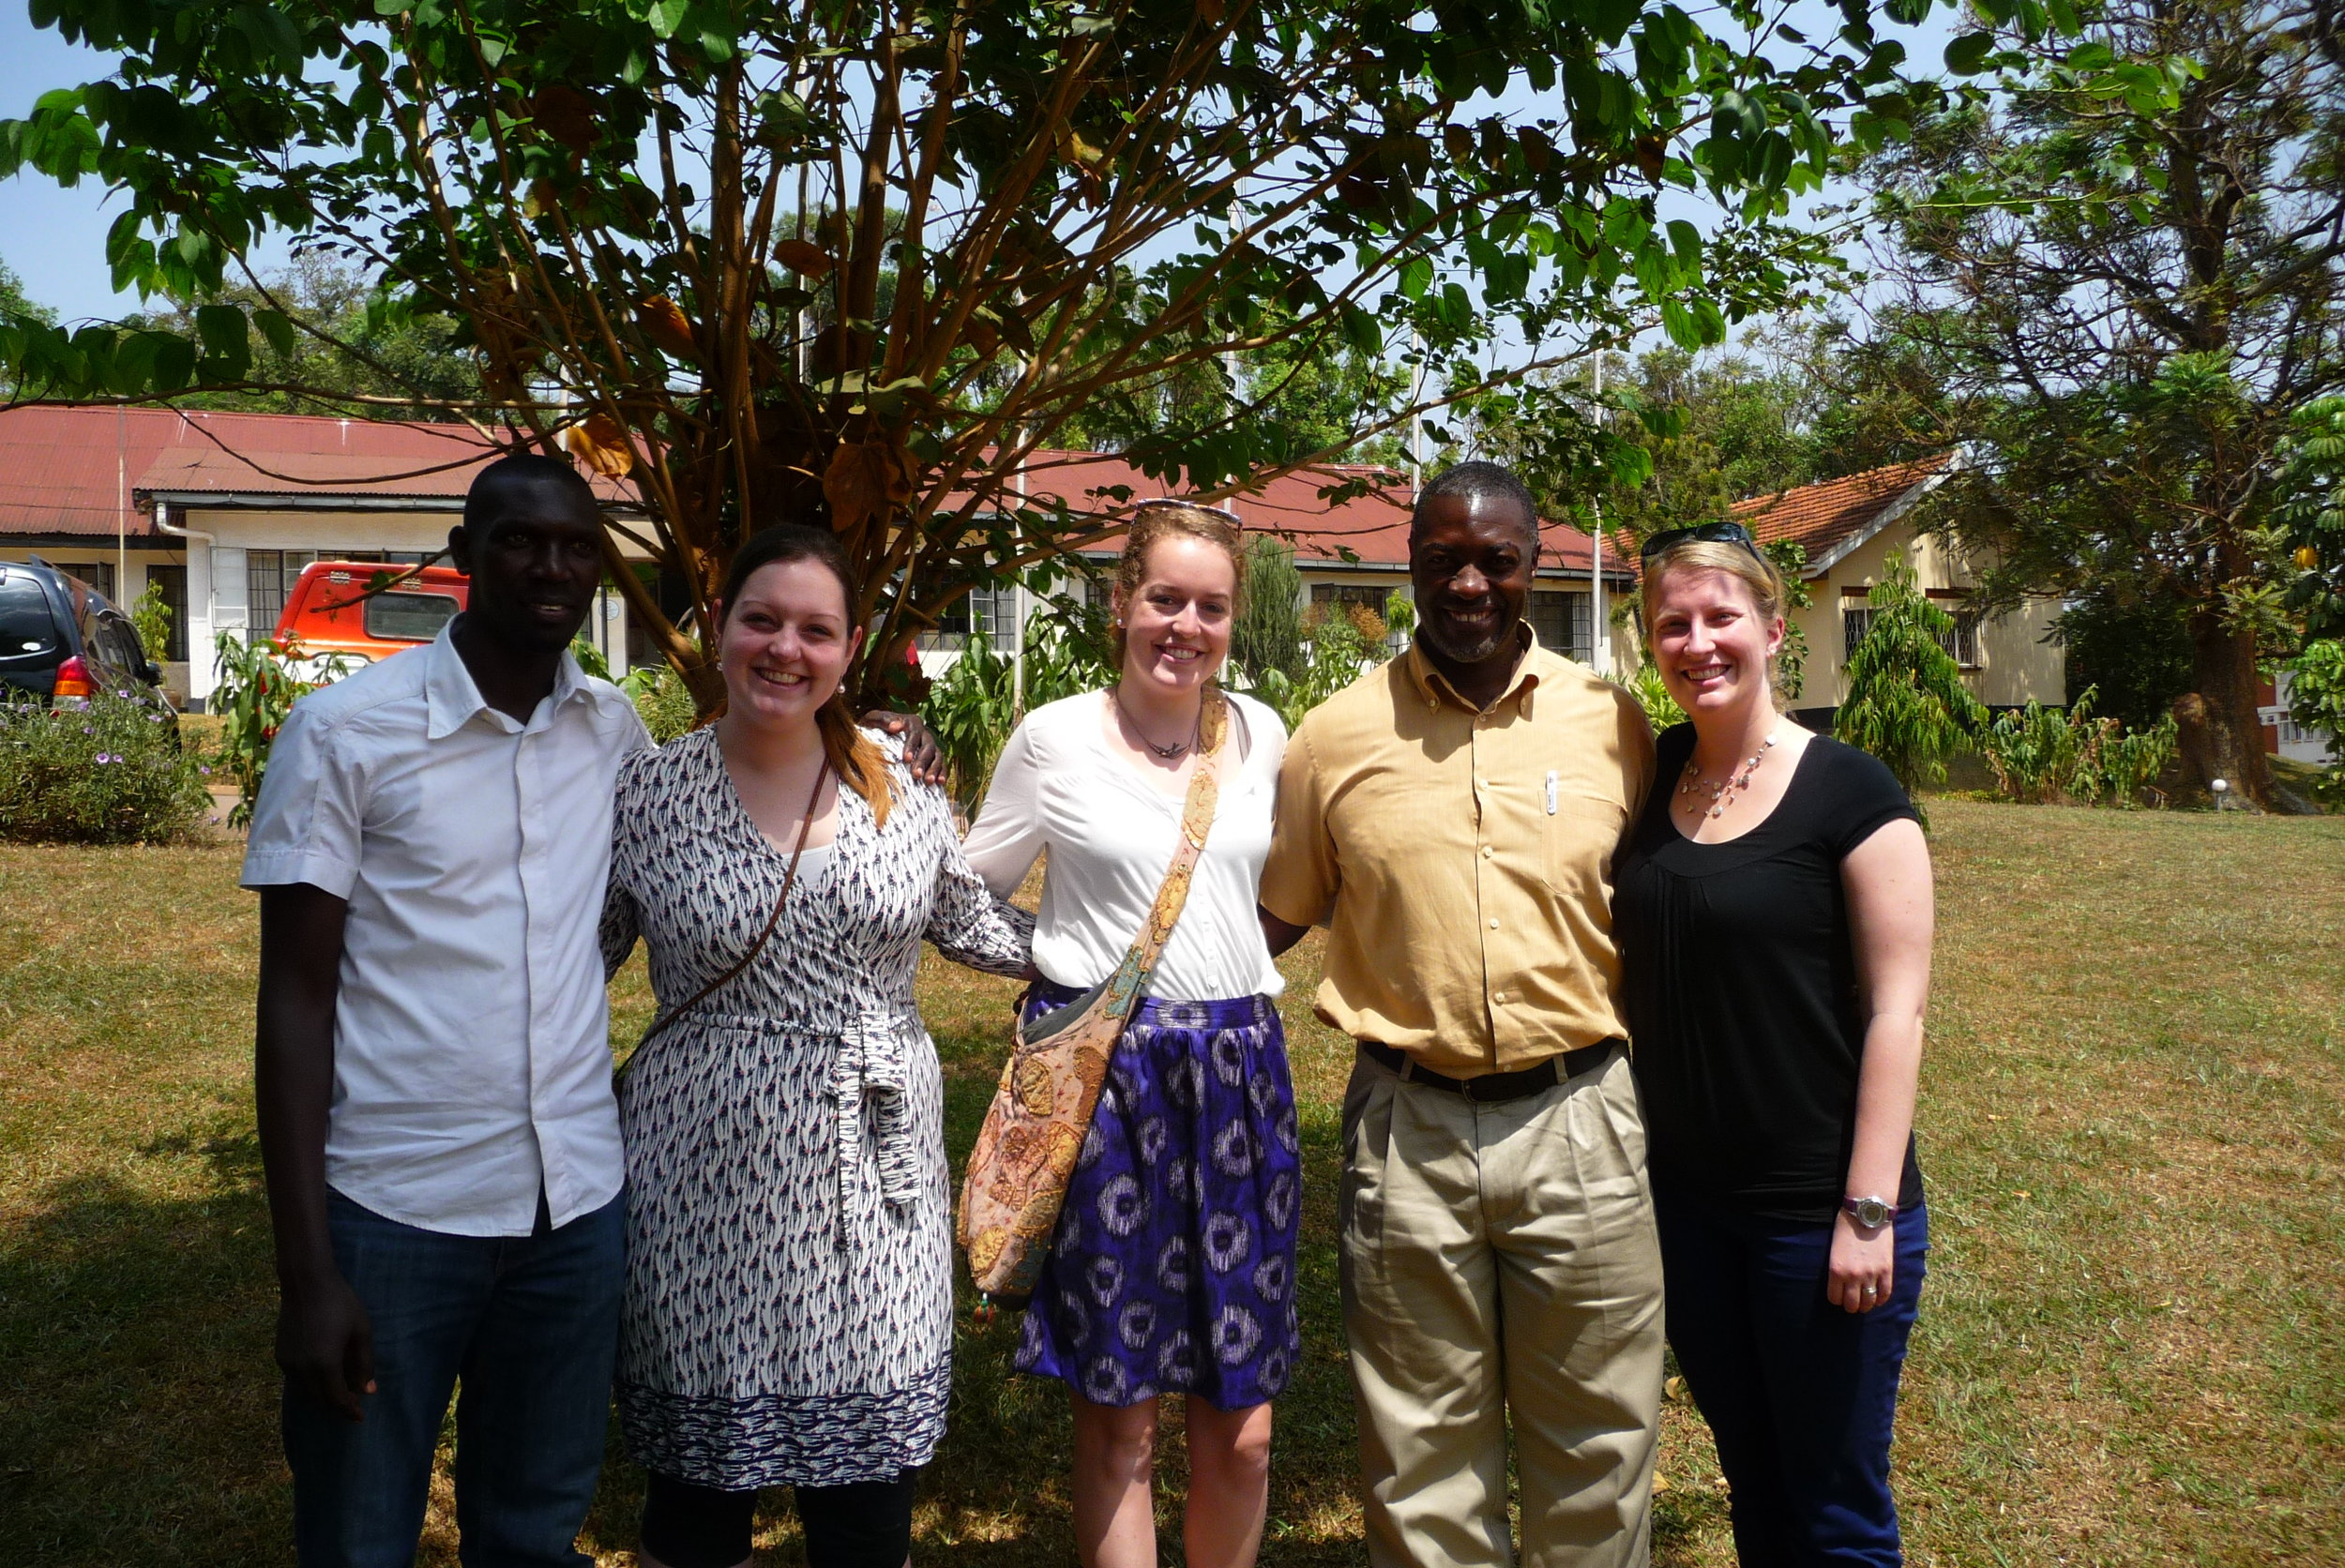 Jamen Kasumba, Kate Bishop-Williams, Vivienne Steele, Shuaib Lwasa, and Sherilee Harper at Makerere University (Kampala, Uganda) on January 29th 2015